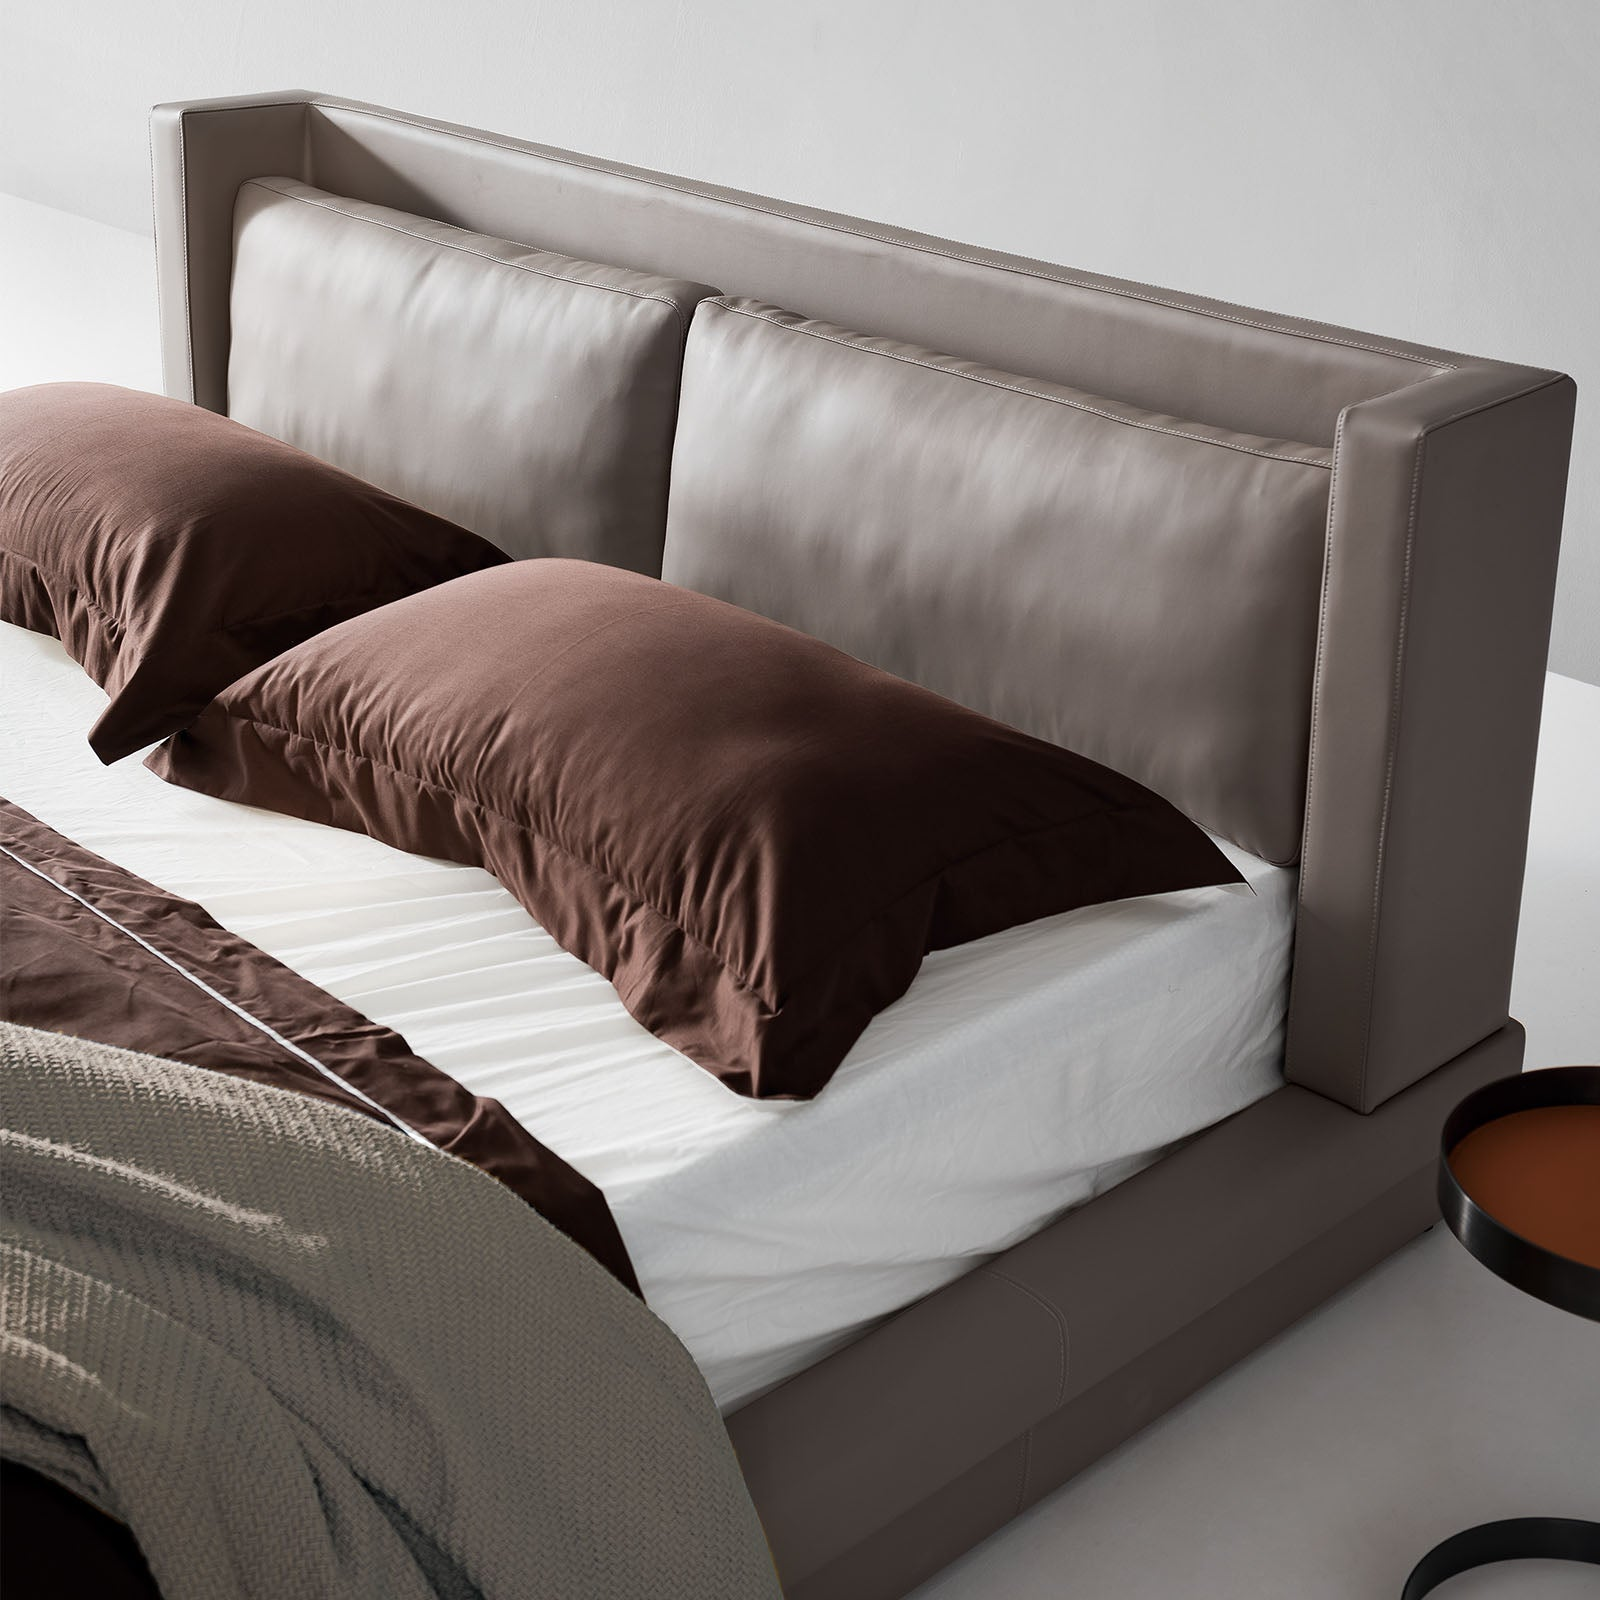 Pre-Order 50 Days Delivery Andria King Size Bed B003